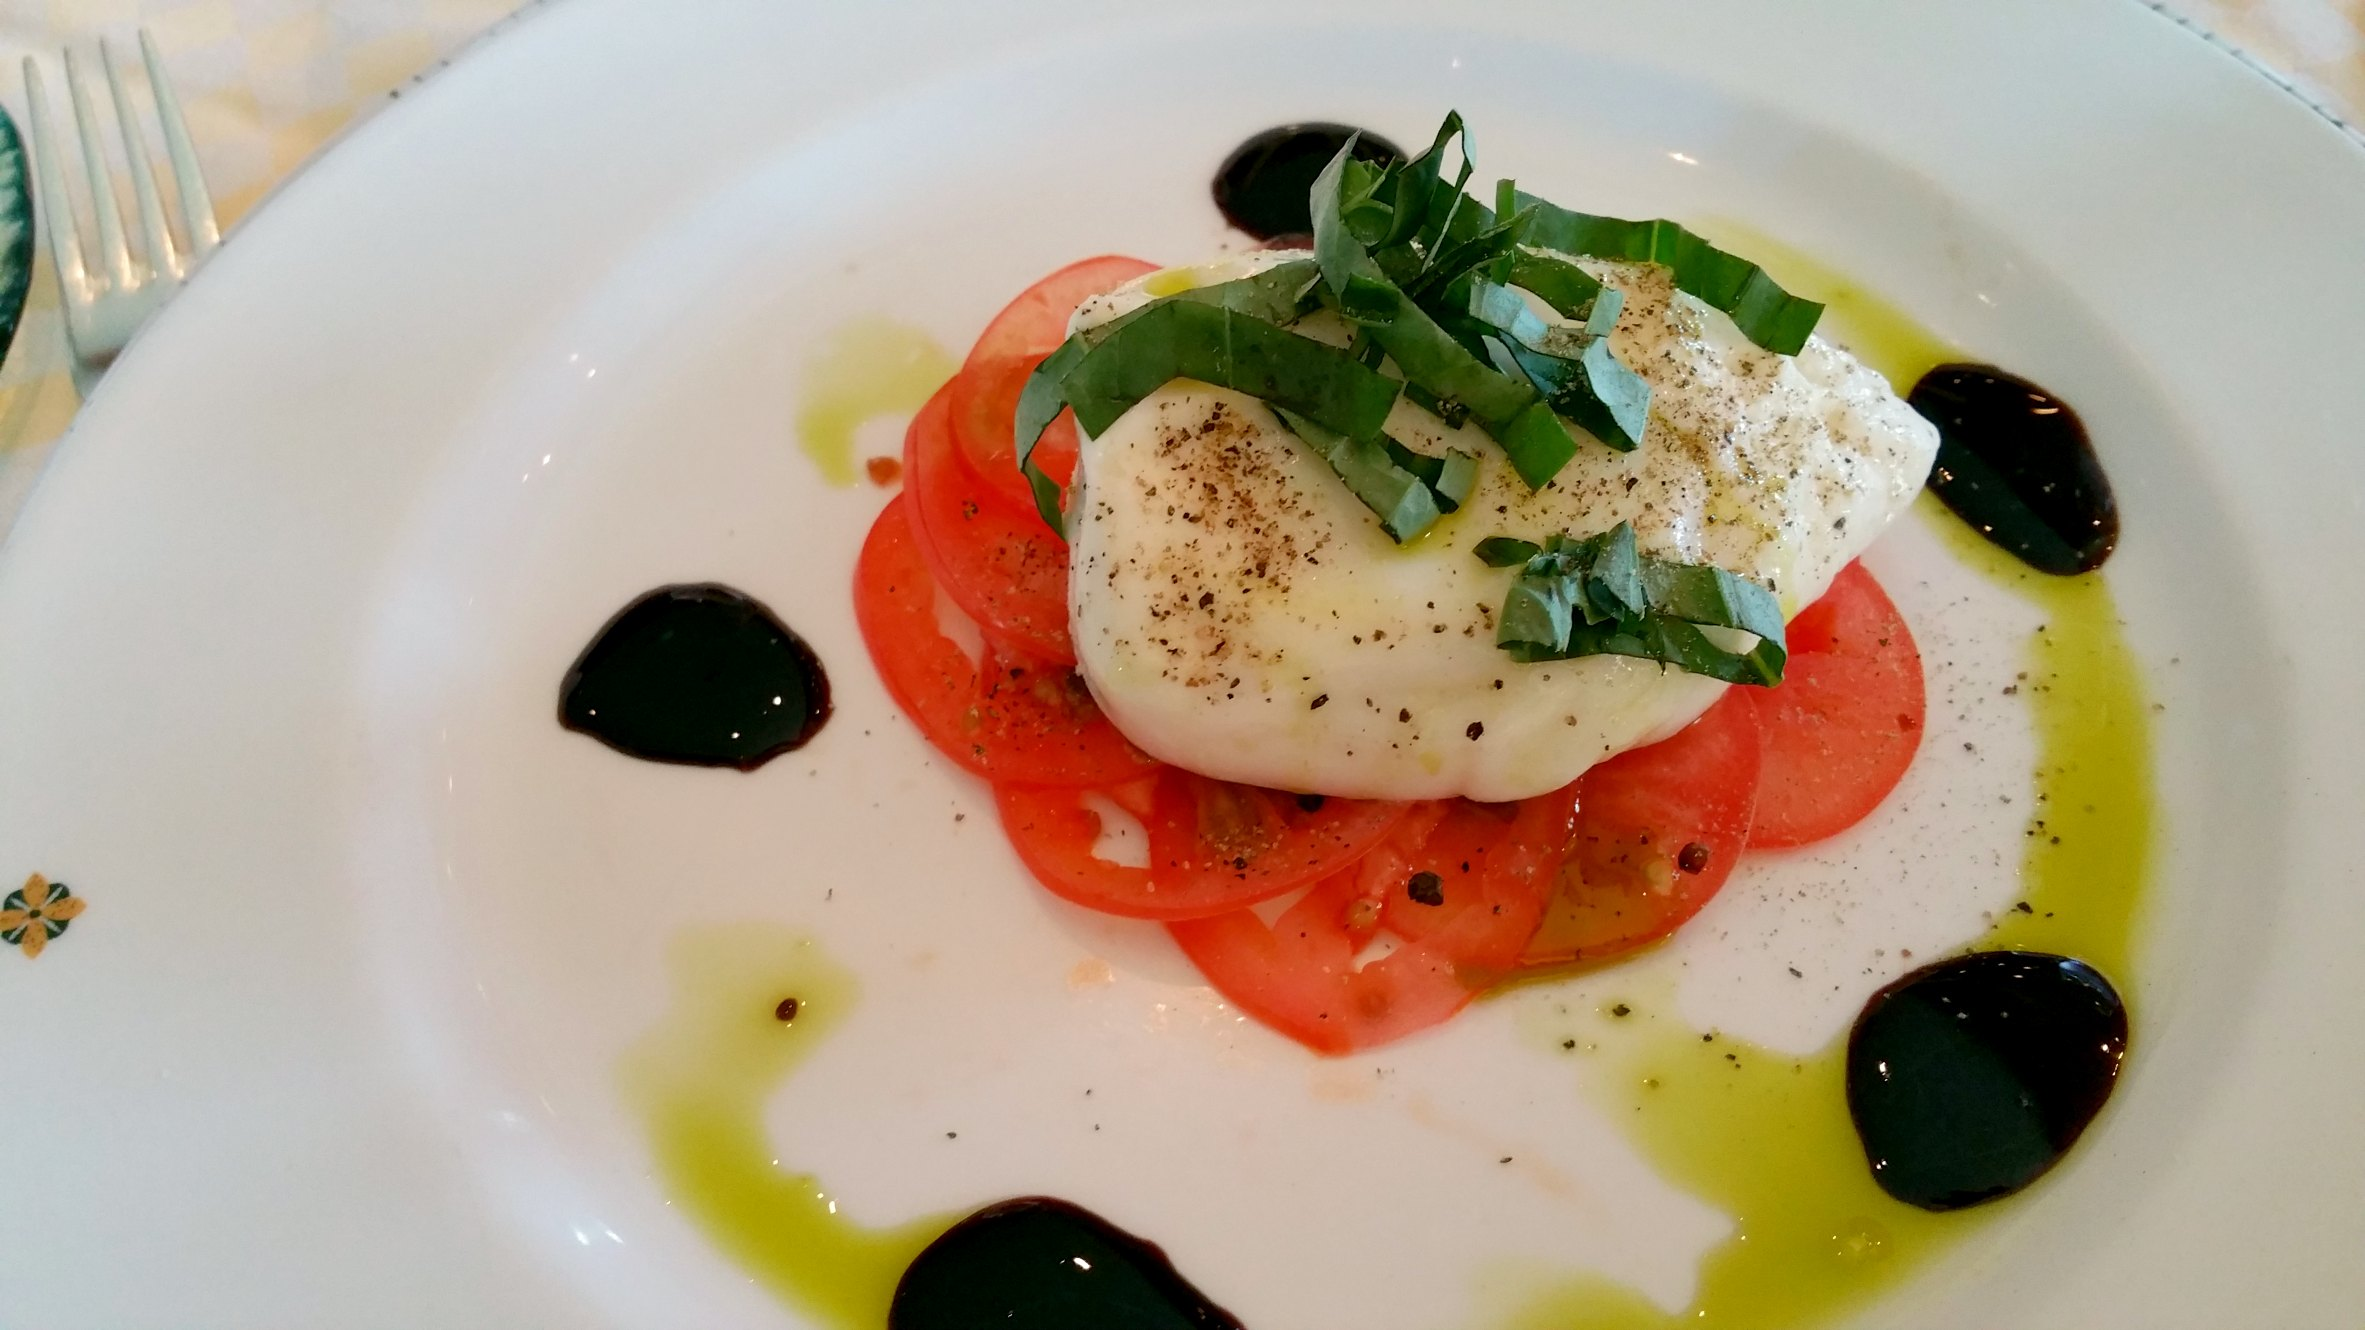 Sabatini's crown princess mozzarella salad